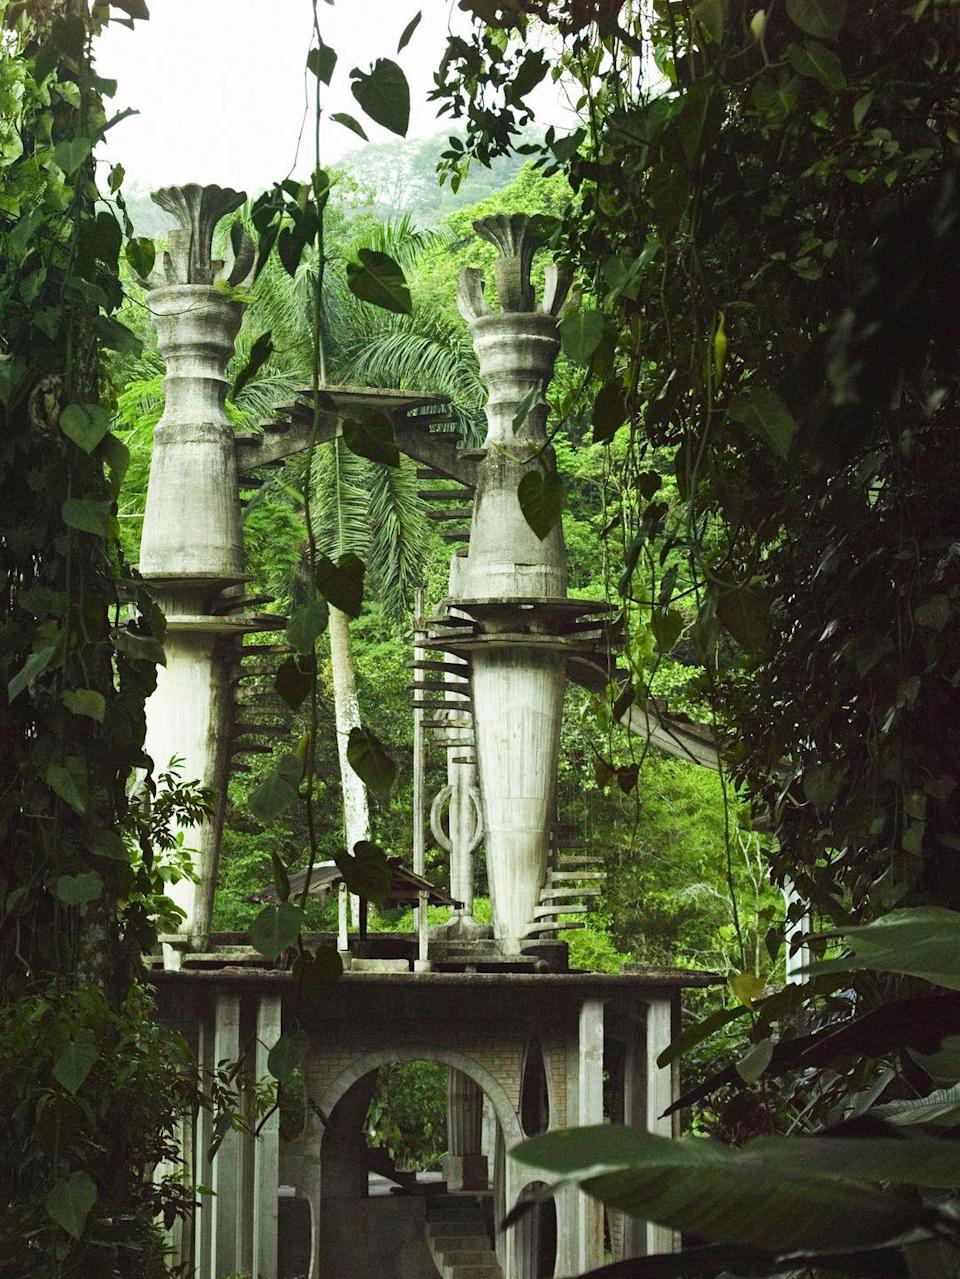 <p>Nestled in Mexico's Huasteca region lies a spectacular series of surrealist architecture and sculptures designed by Edward James. The British poet and artist collaborated with local artisans to build and design more than two dozen architectural follies in which much of the natural vegetation has become intertwined since construction in 1944. While this sculpture garden is certainly off the beaten path, art and nature enthusiasts will revel in its majesty and serenity. </p>